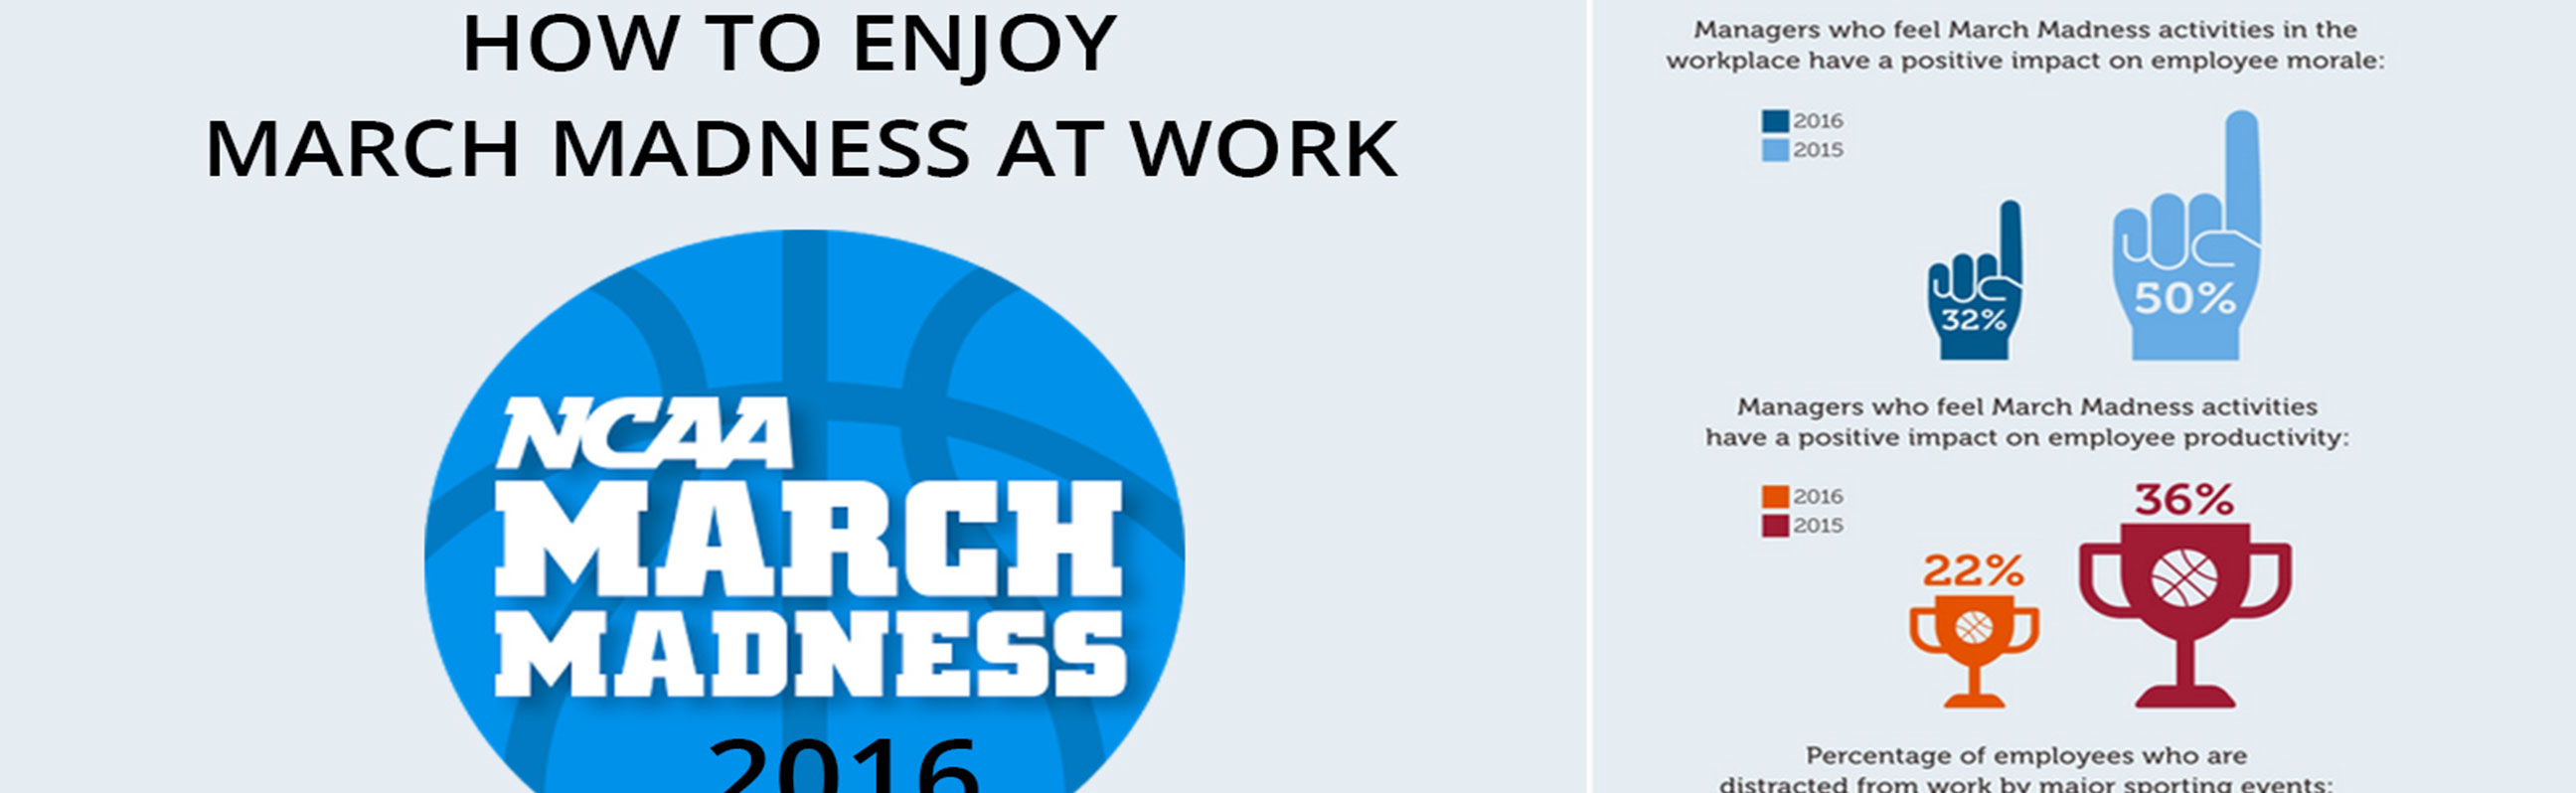 How to Enjoy March Madness at Work